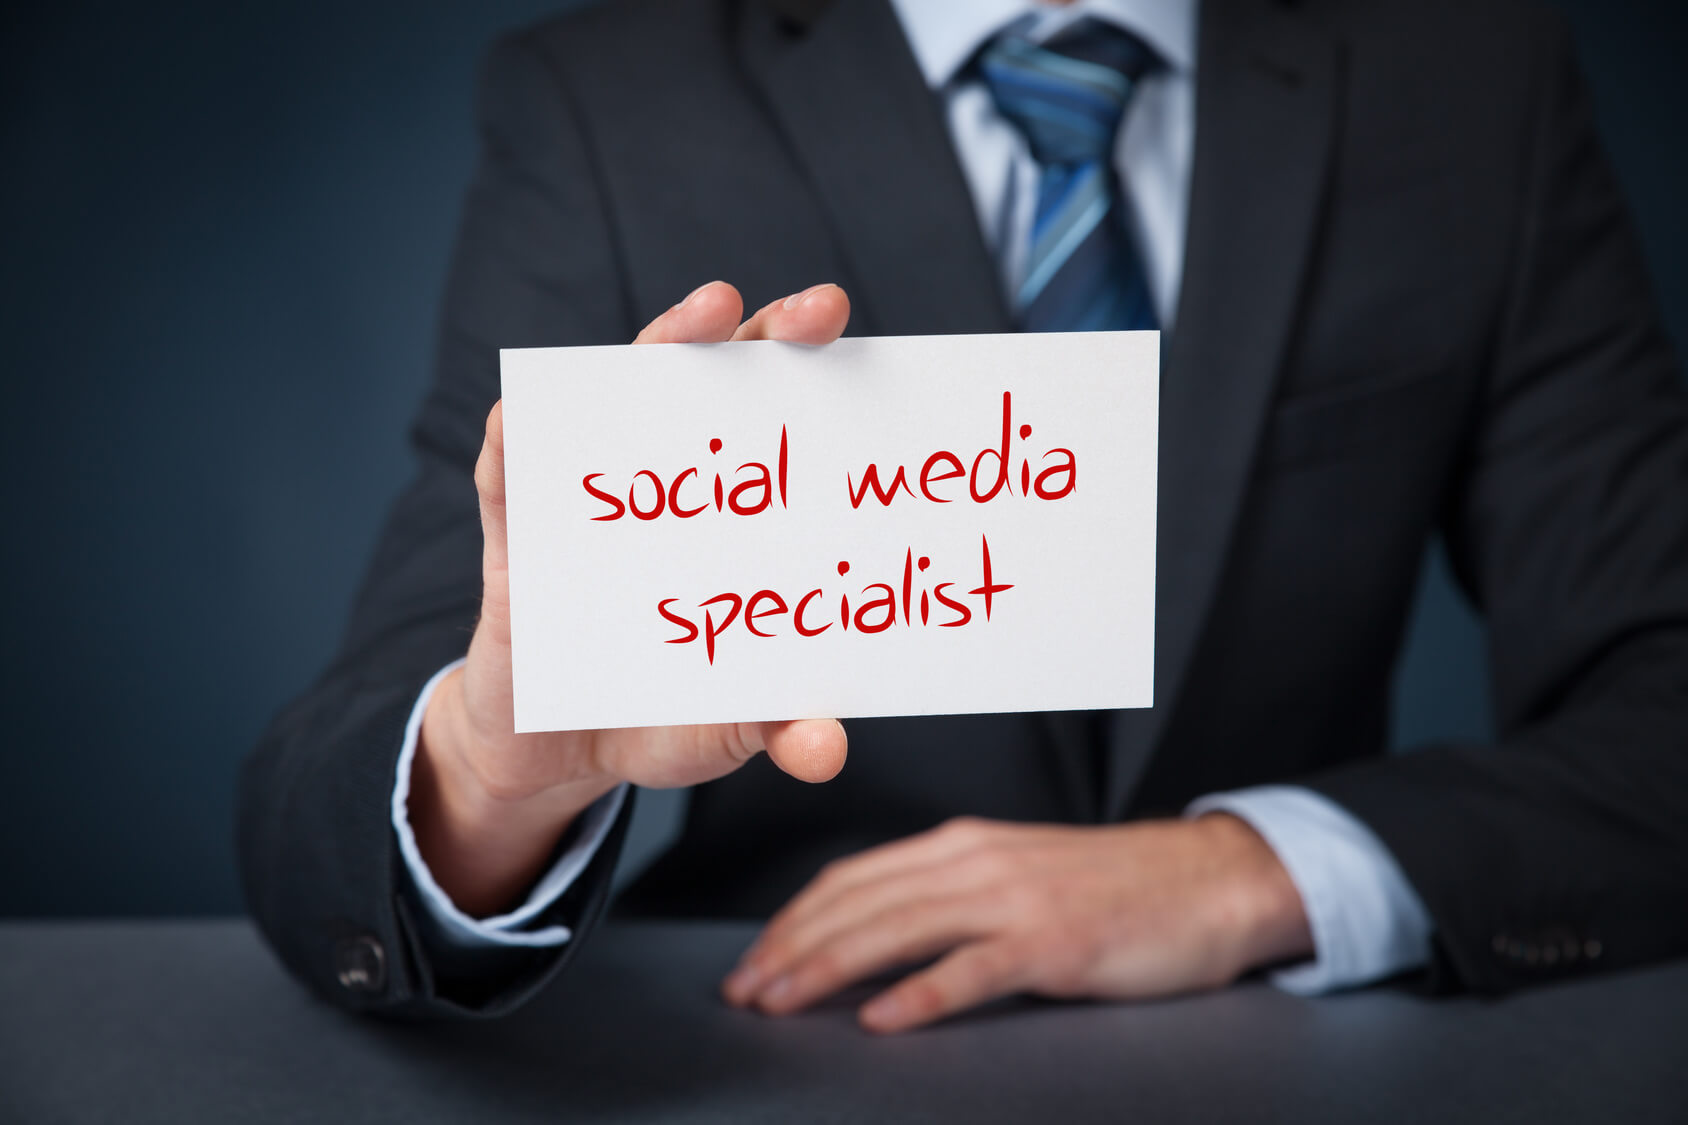 5 Ways to Grow Your Social Media Without a Specialist